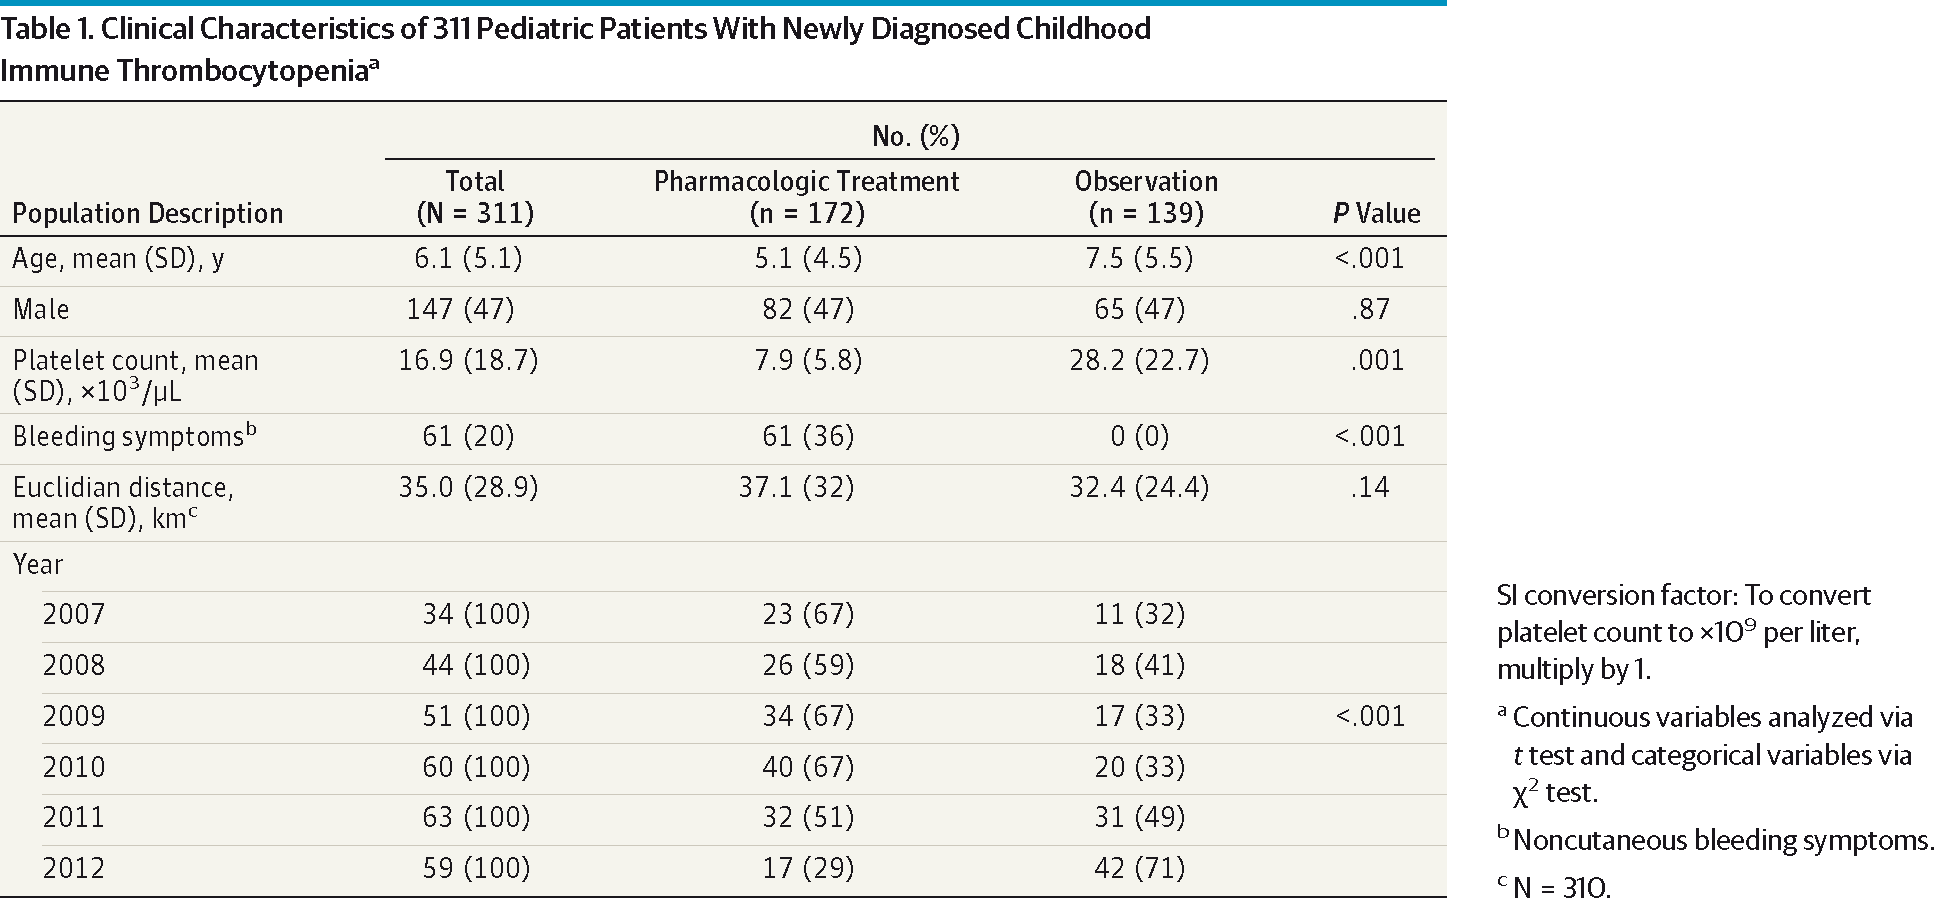 Clinical Characteristics Of 311 Pediatric Patients With Newly Diagnosed Childhood Immune Thrombocytopeniaa